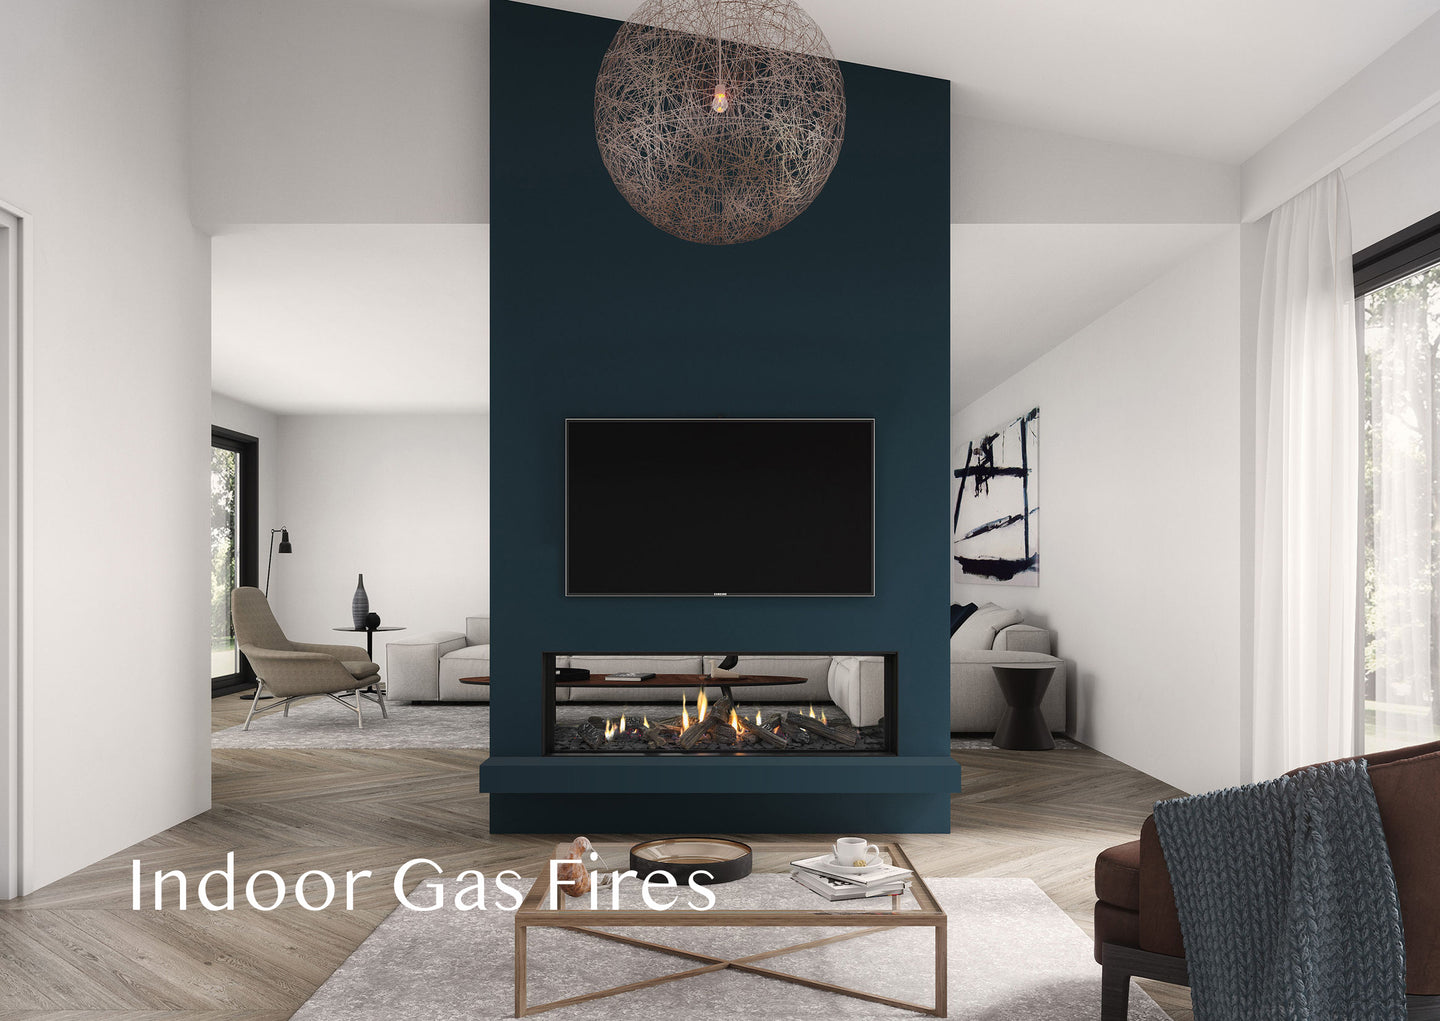 Indoor Gas Fires